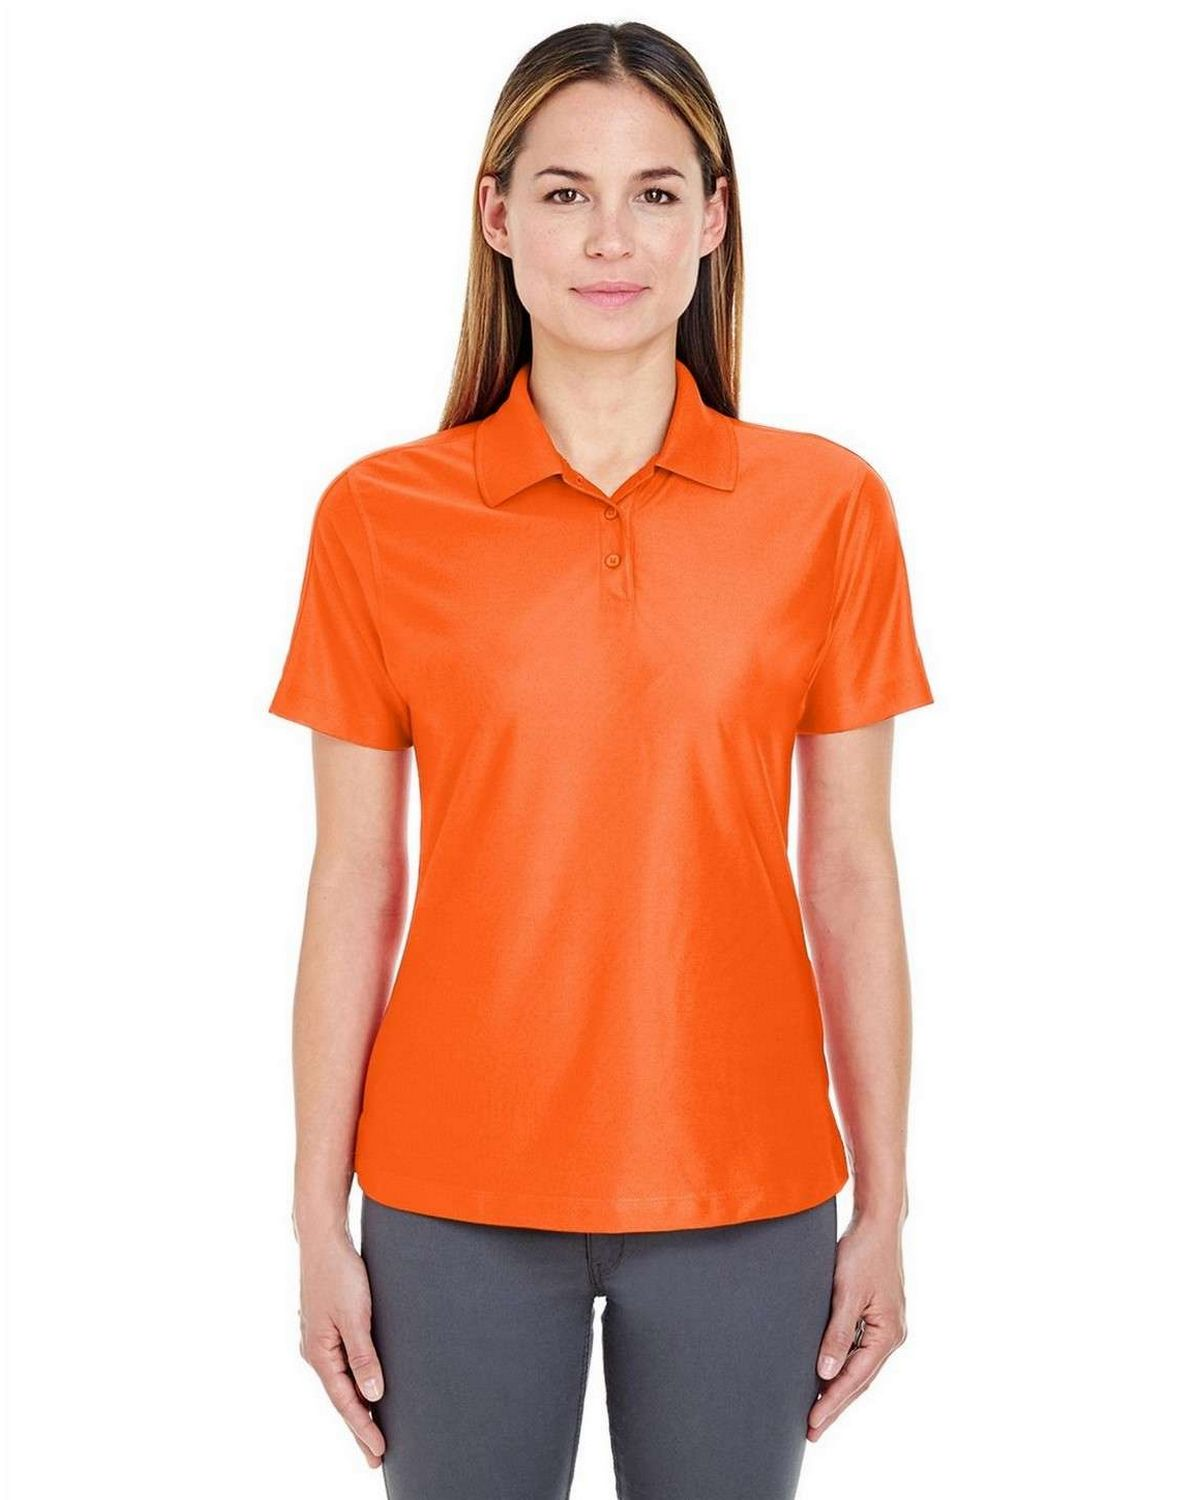 Ultraclub 8414 Ladies Solid Wicking Polo